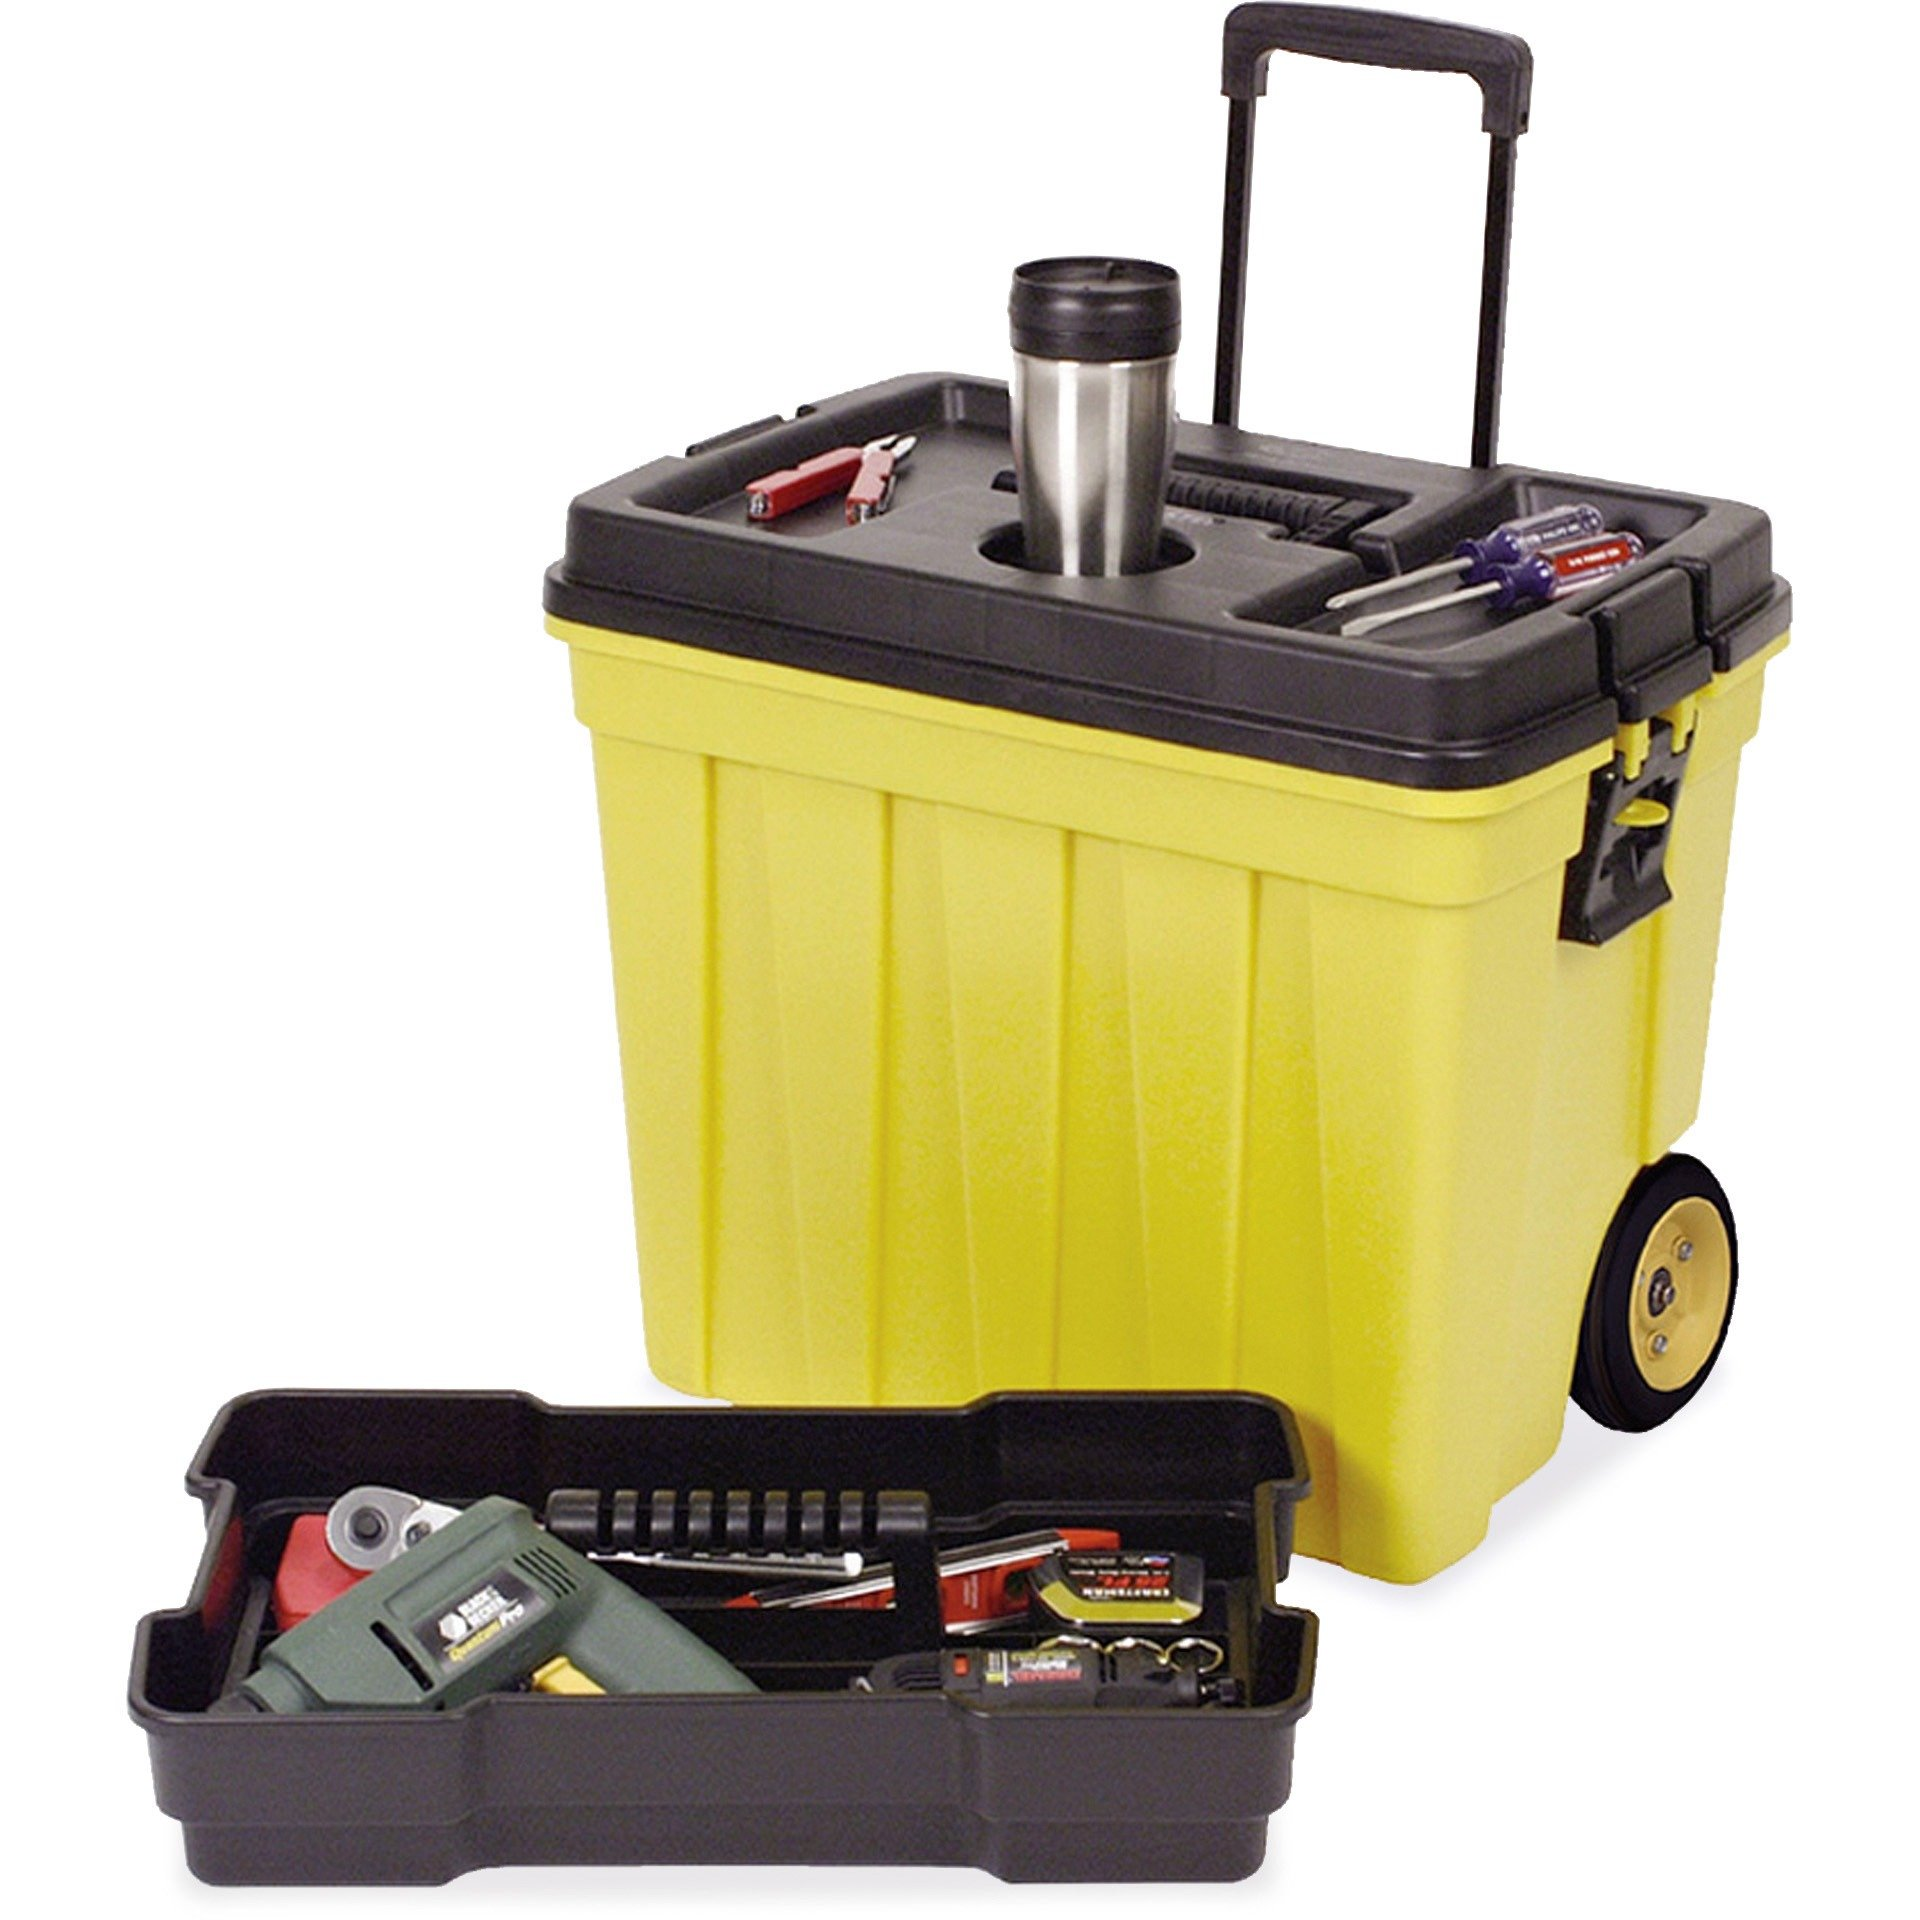 Continental Manufacturing Mobile Work Box, 23-1/2 by 15-1/2 by 20-1/4-Inch, Yellow/Black